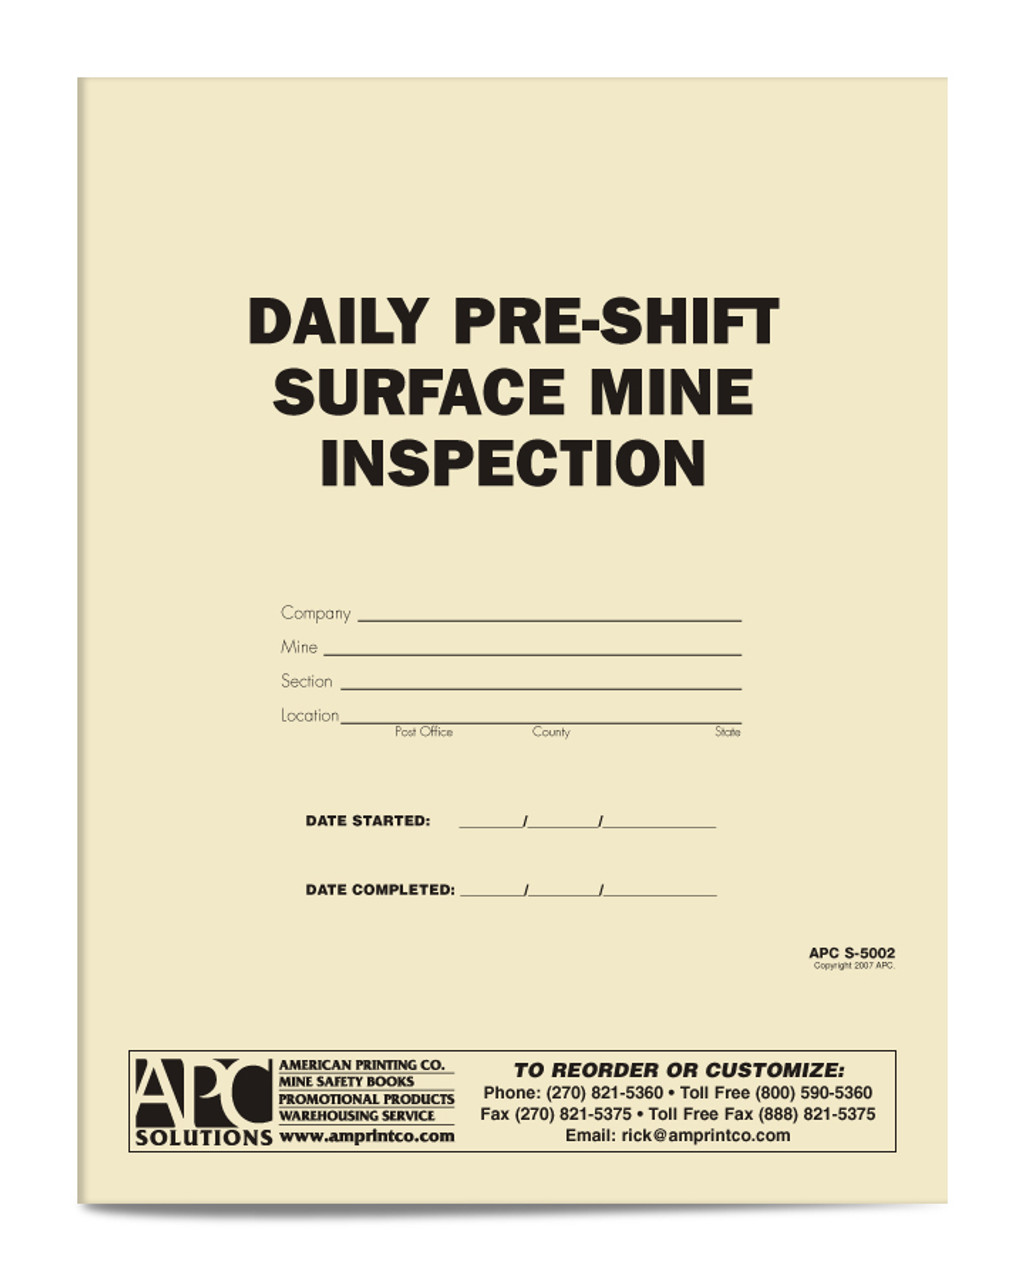 APC S-5002: Daily Pre-Shift Surface Mine Inspection